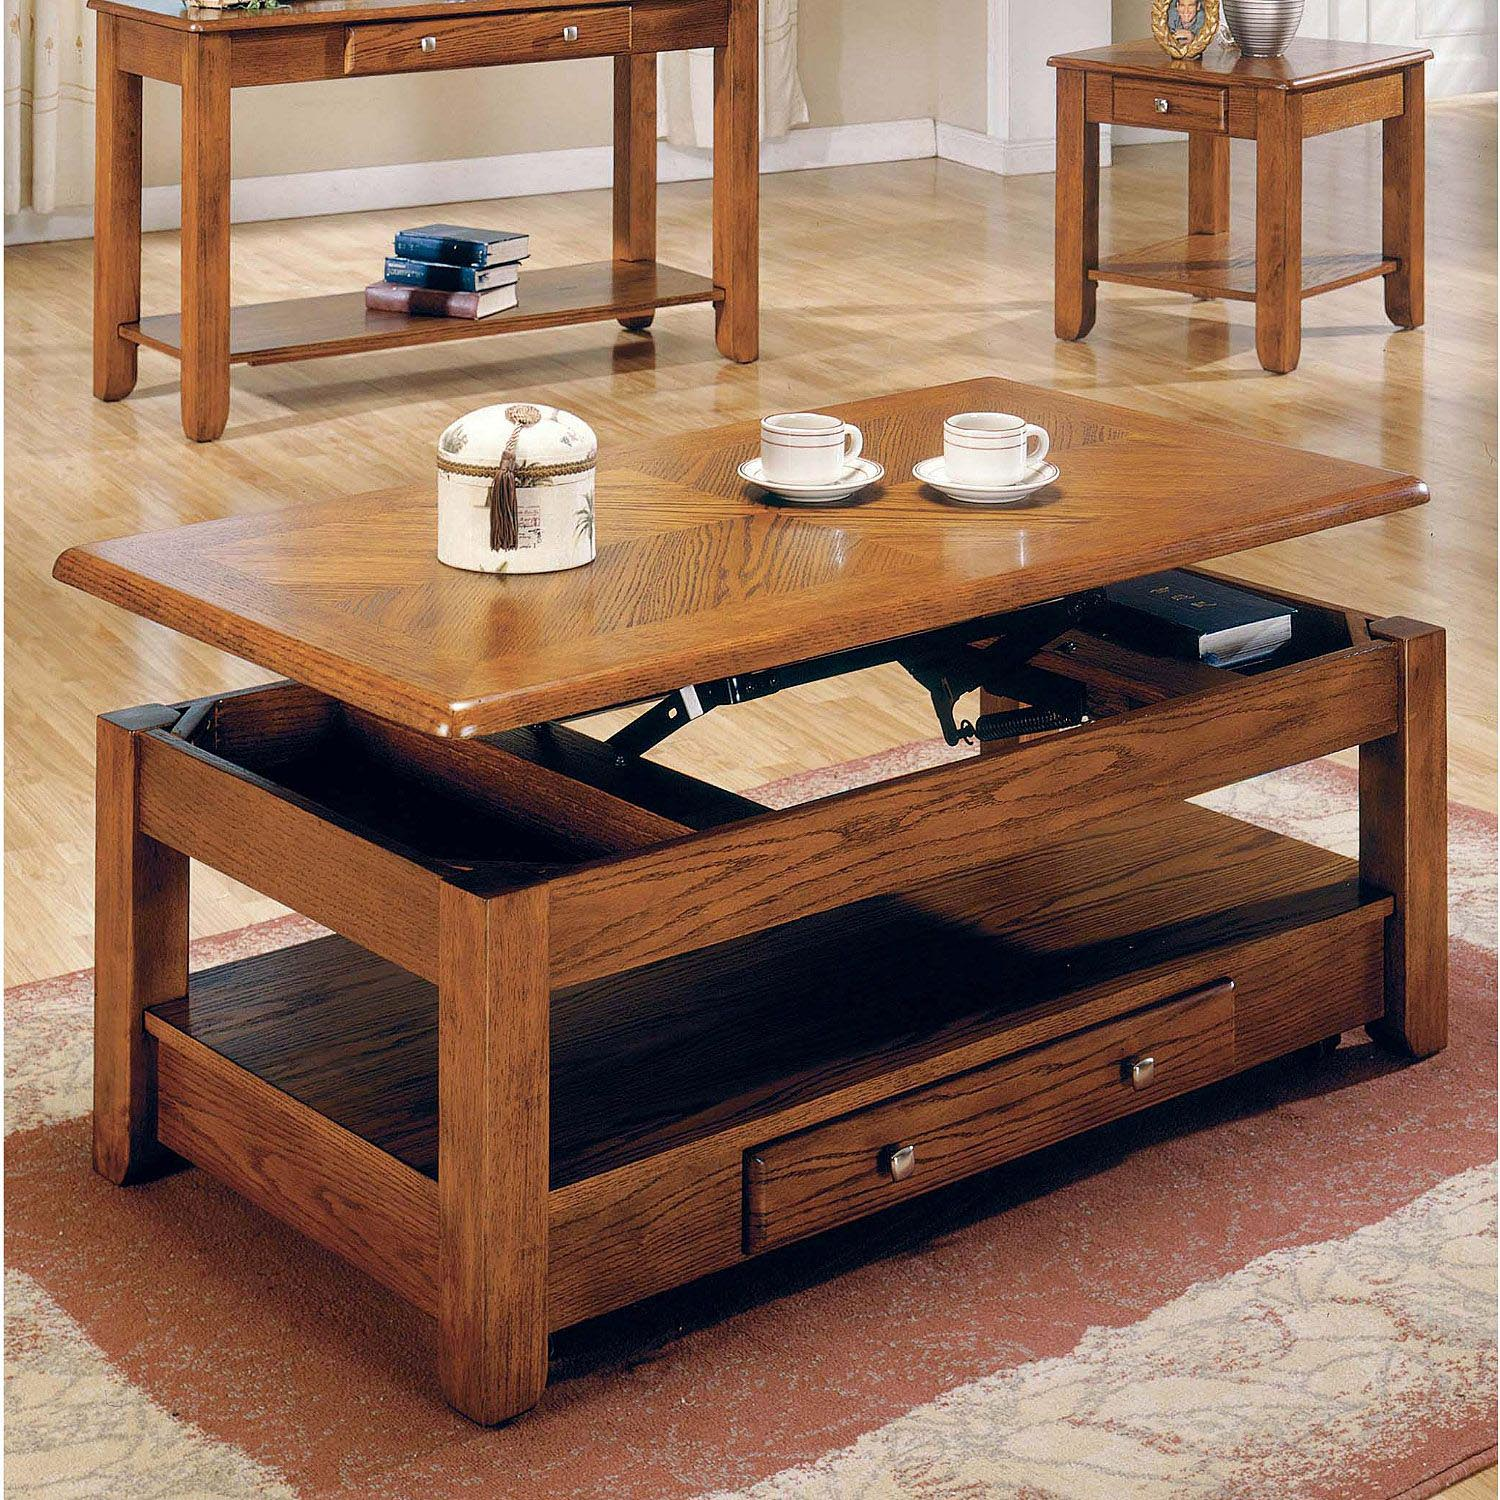 Low Rise Coffee Table Design Ideas